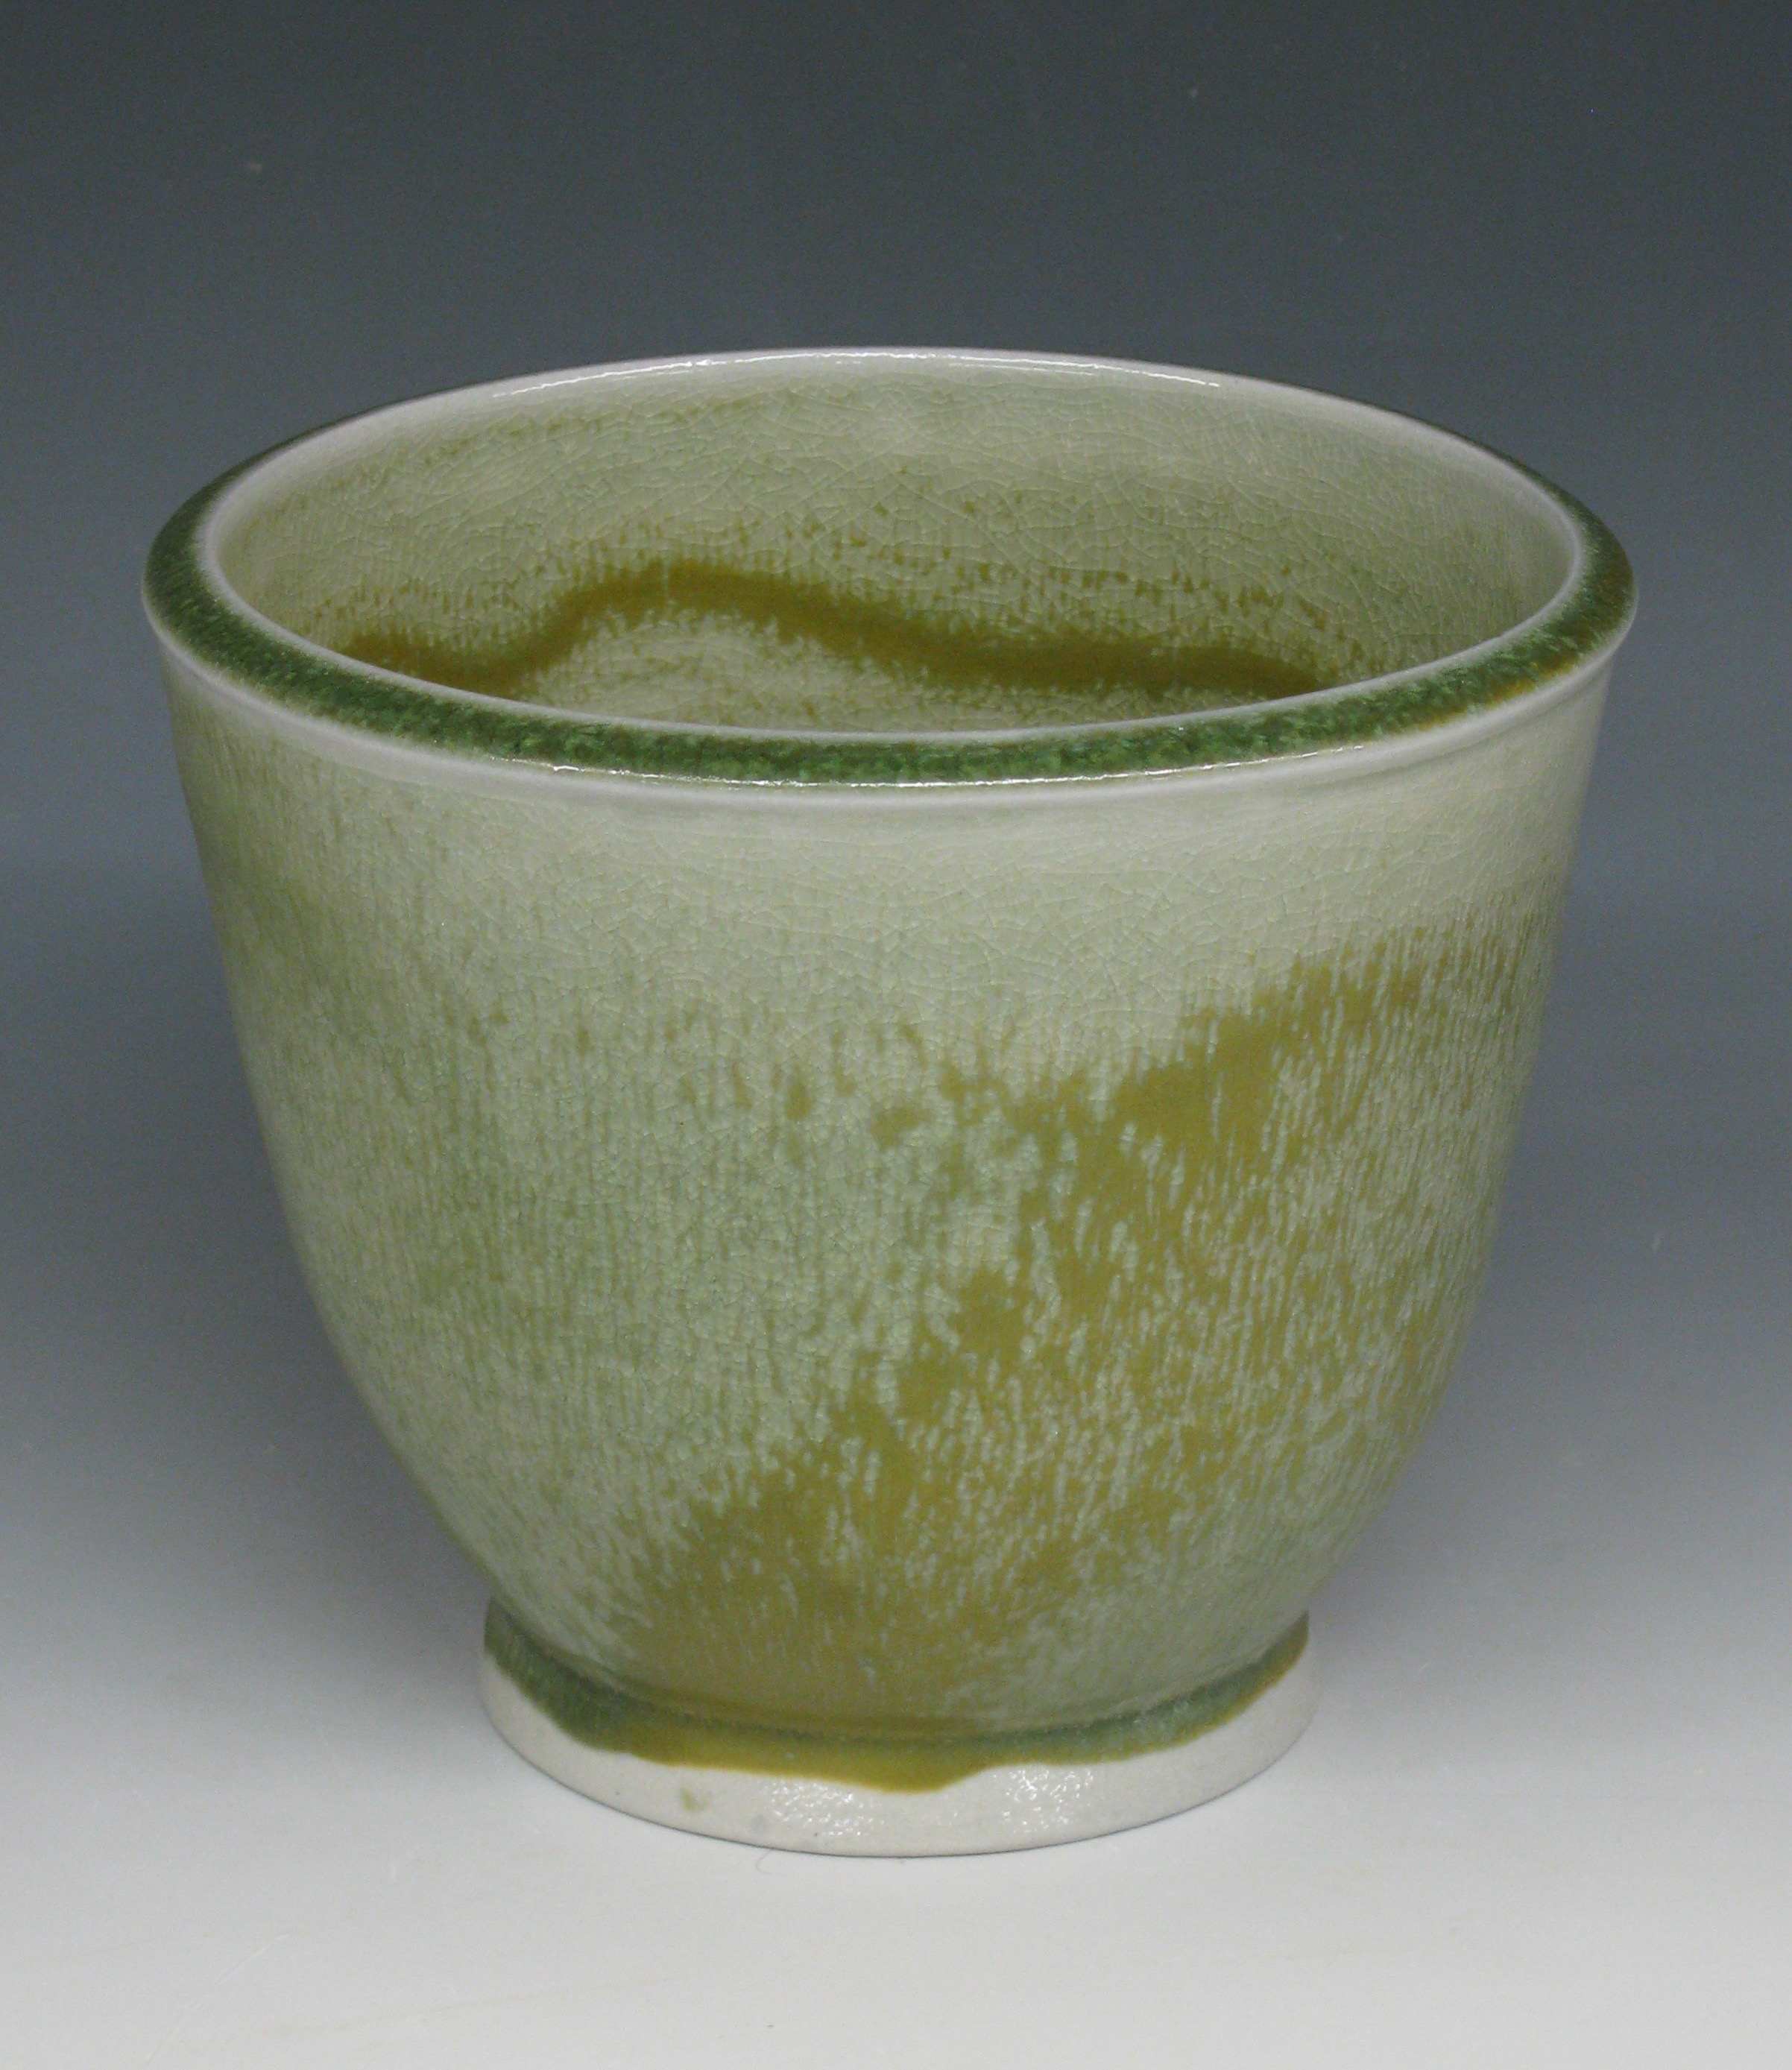 salt-fired celadon bowl profile.jpg